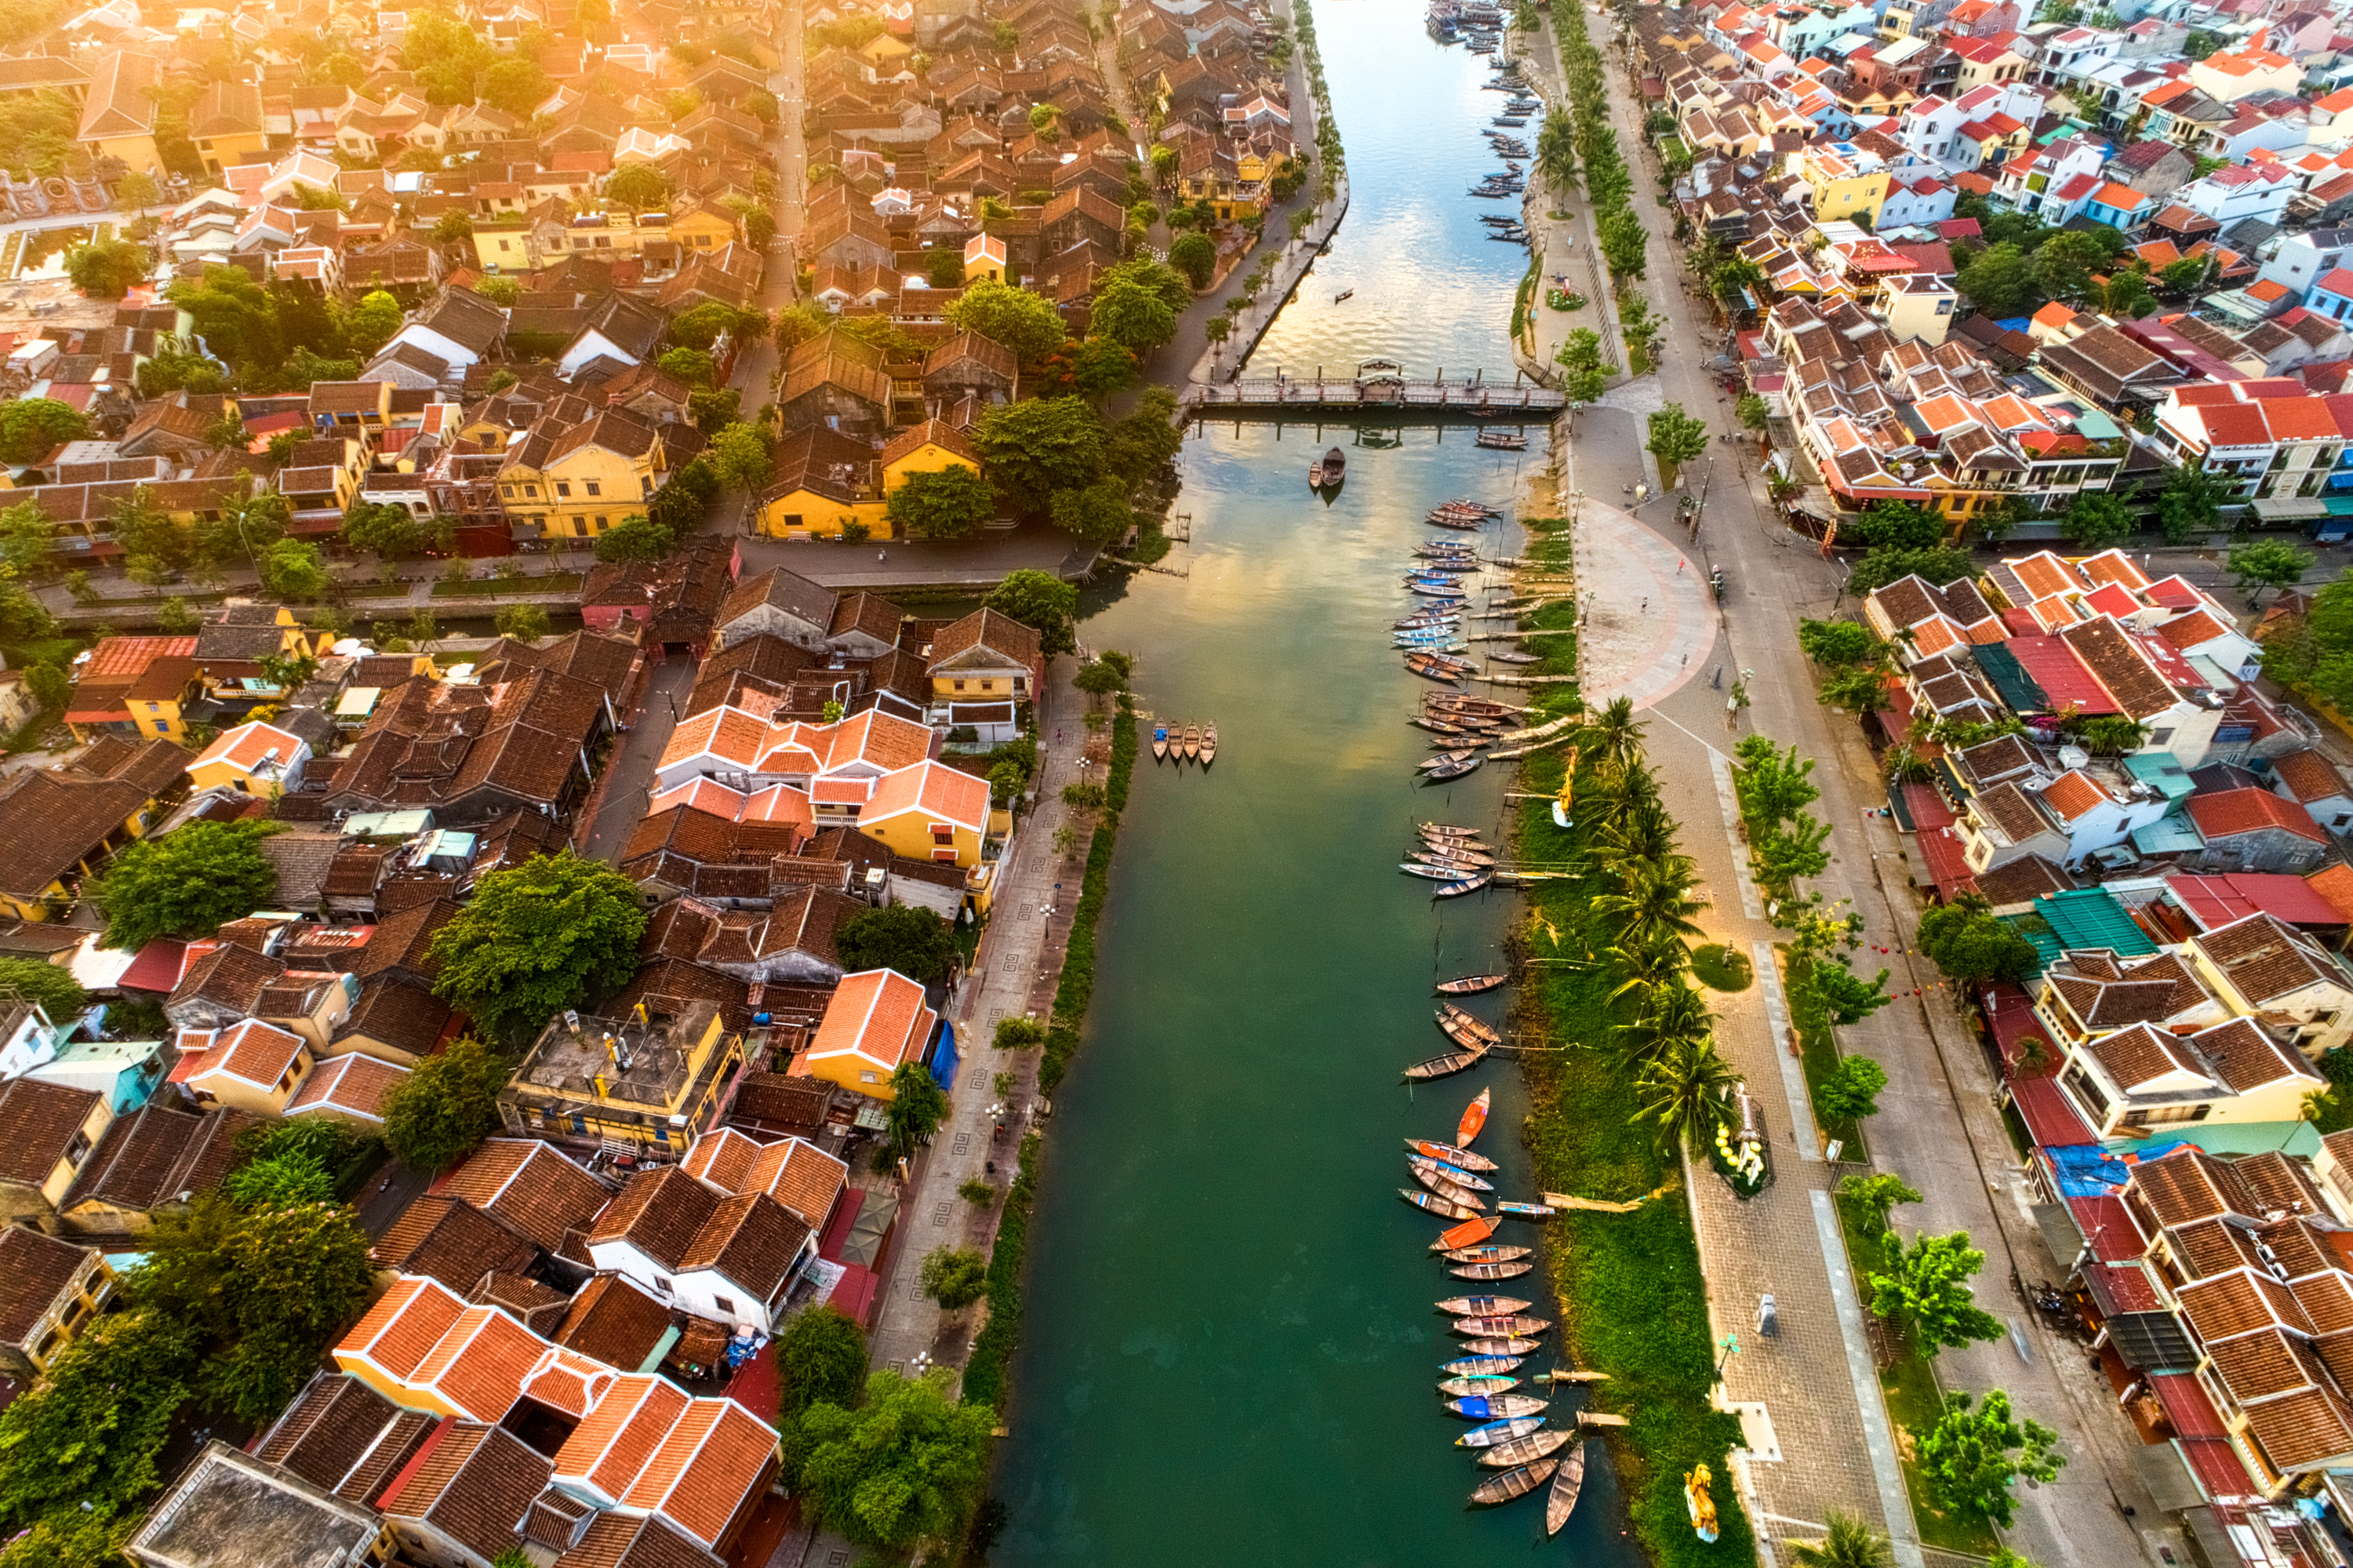 Aerial view of Hoi An town